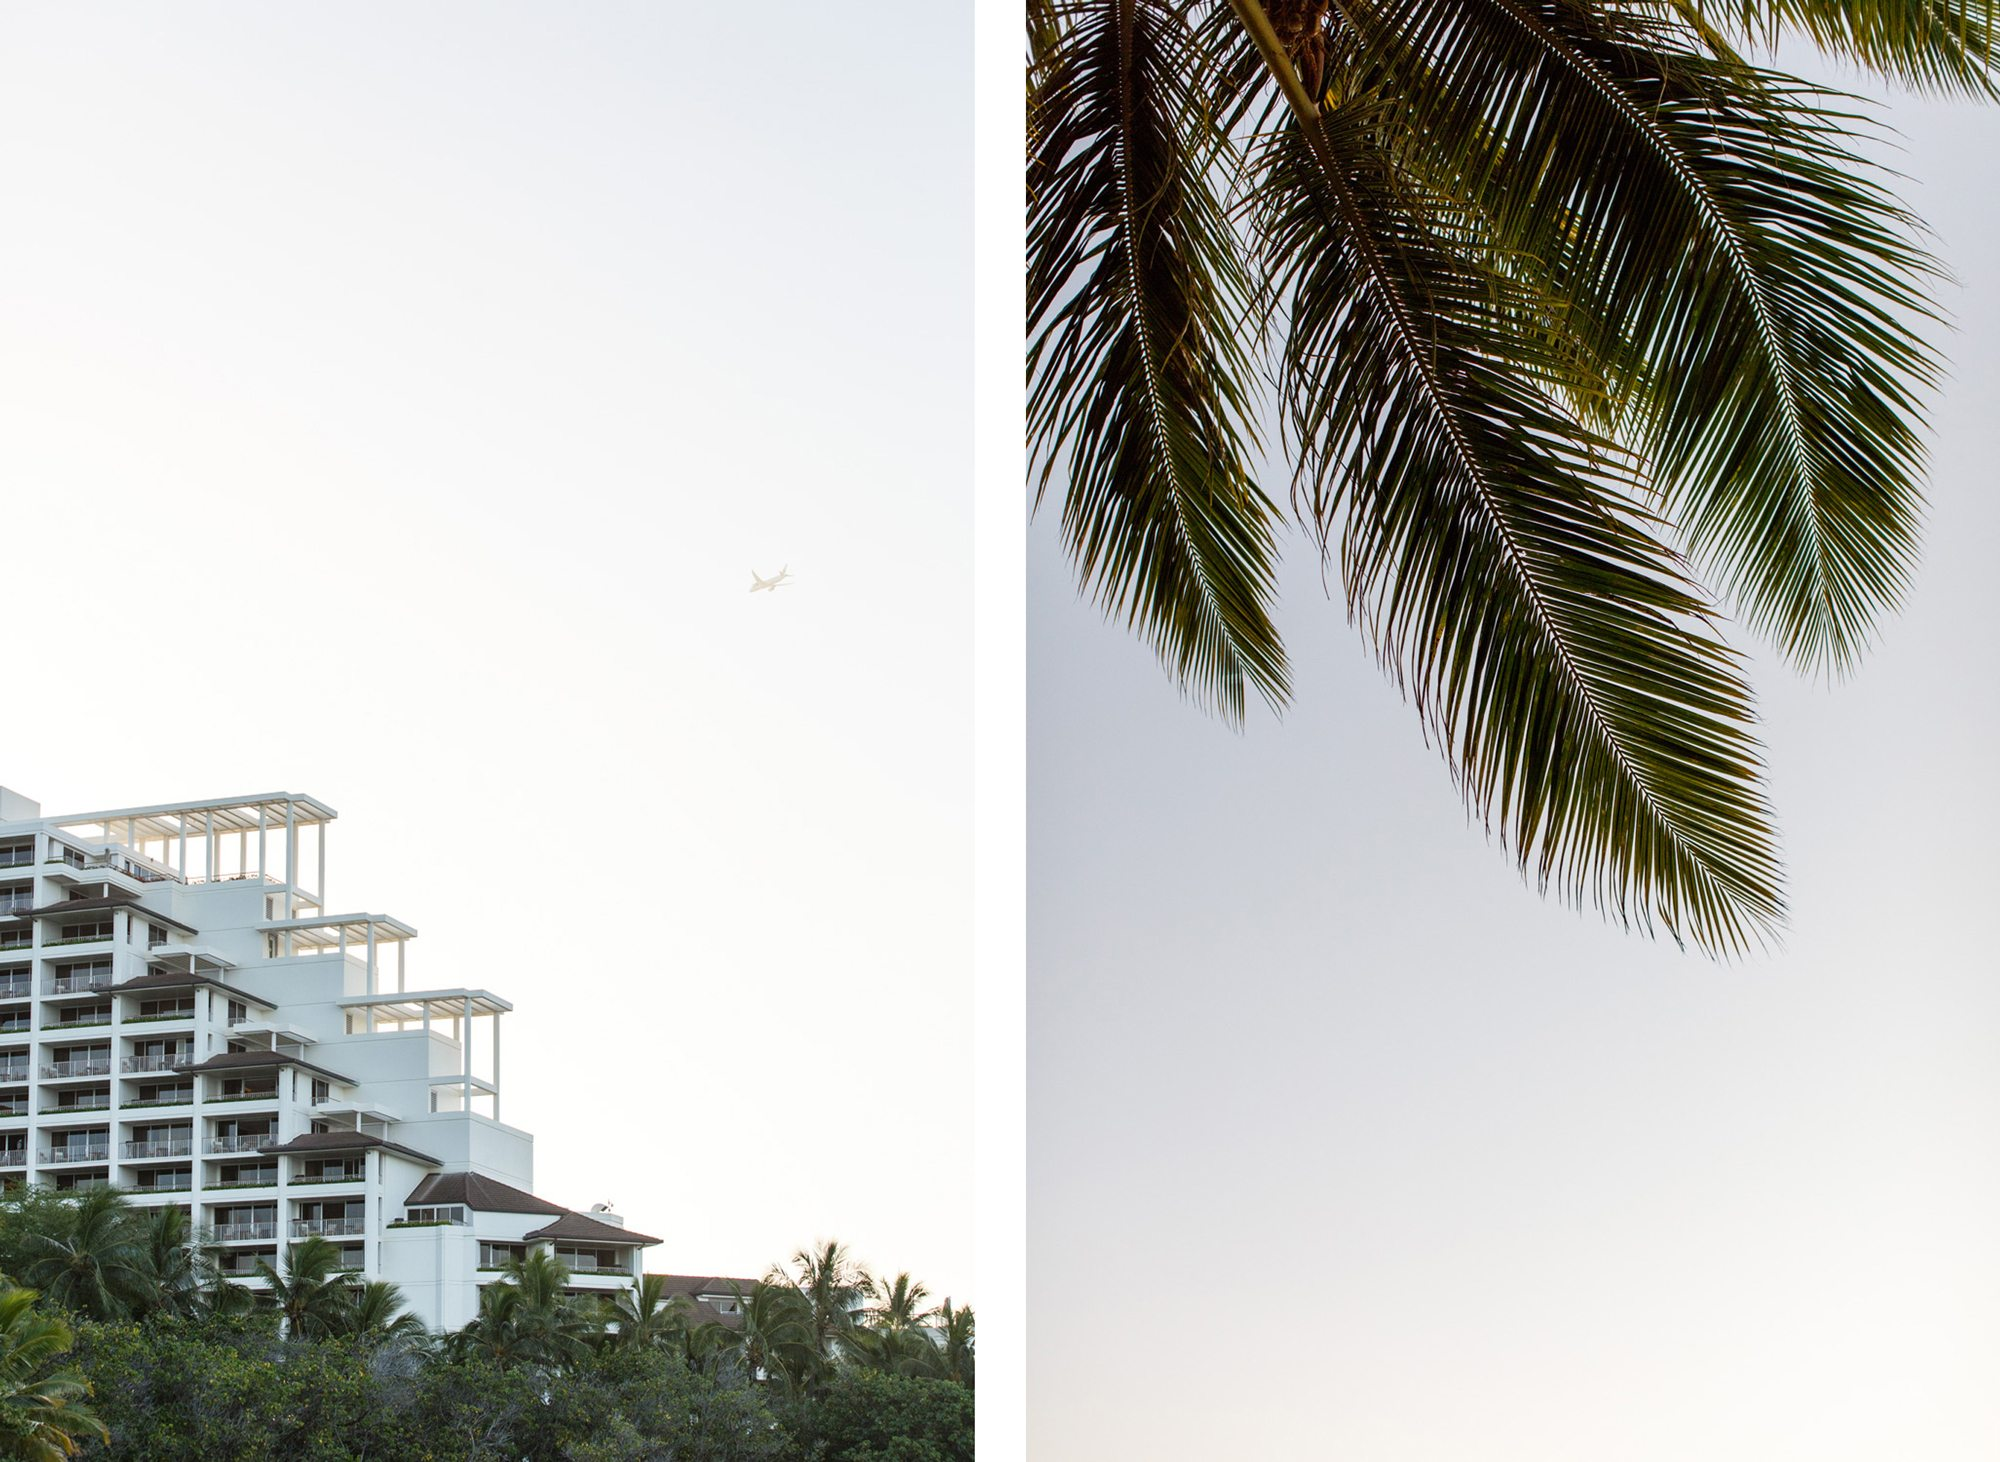 Oahu architecture, palm tree comparison